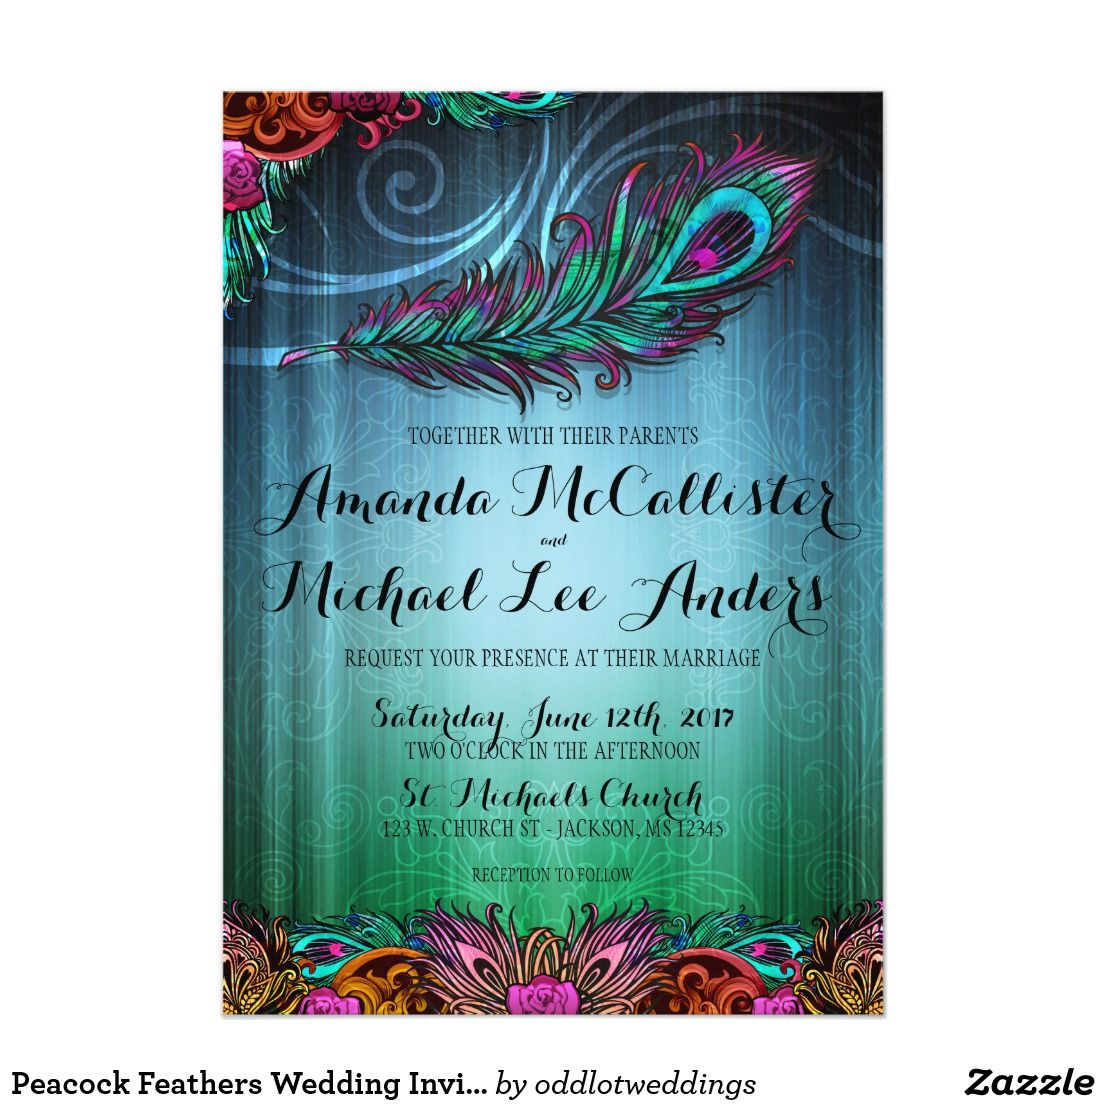 Peacock Feathers Wedding Invitation Peacock Feathers And Weddings